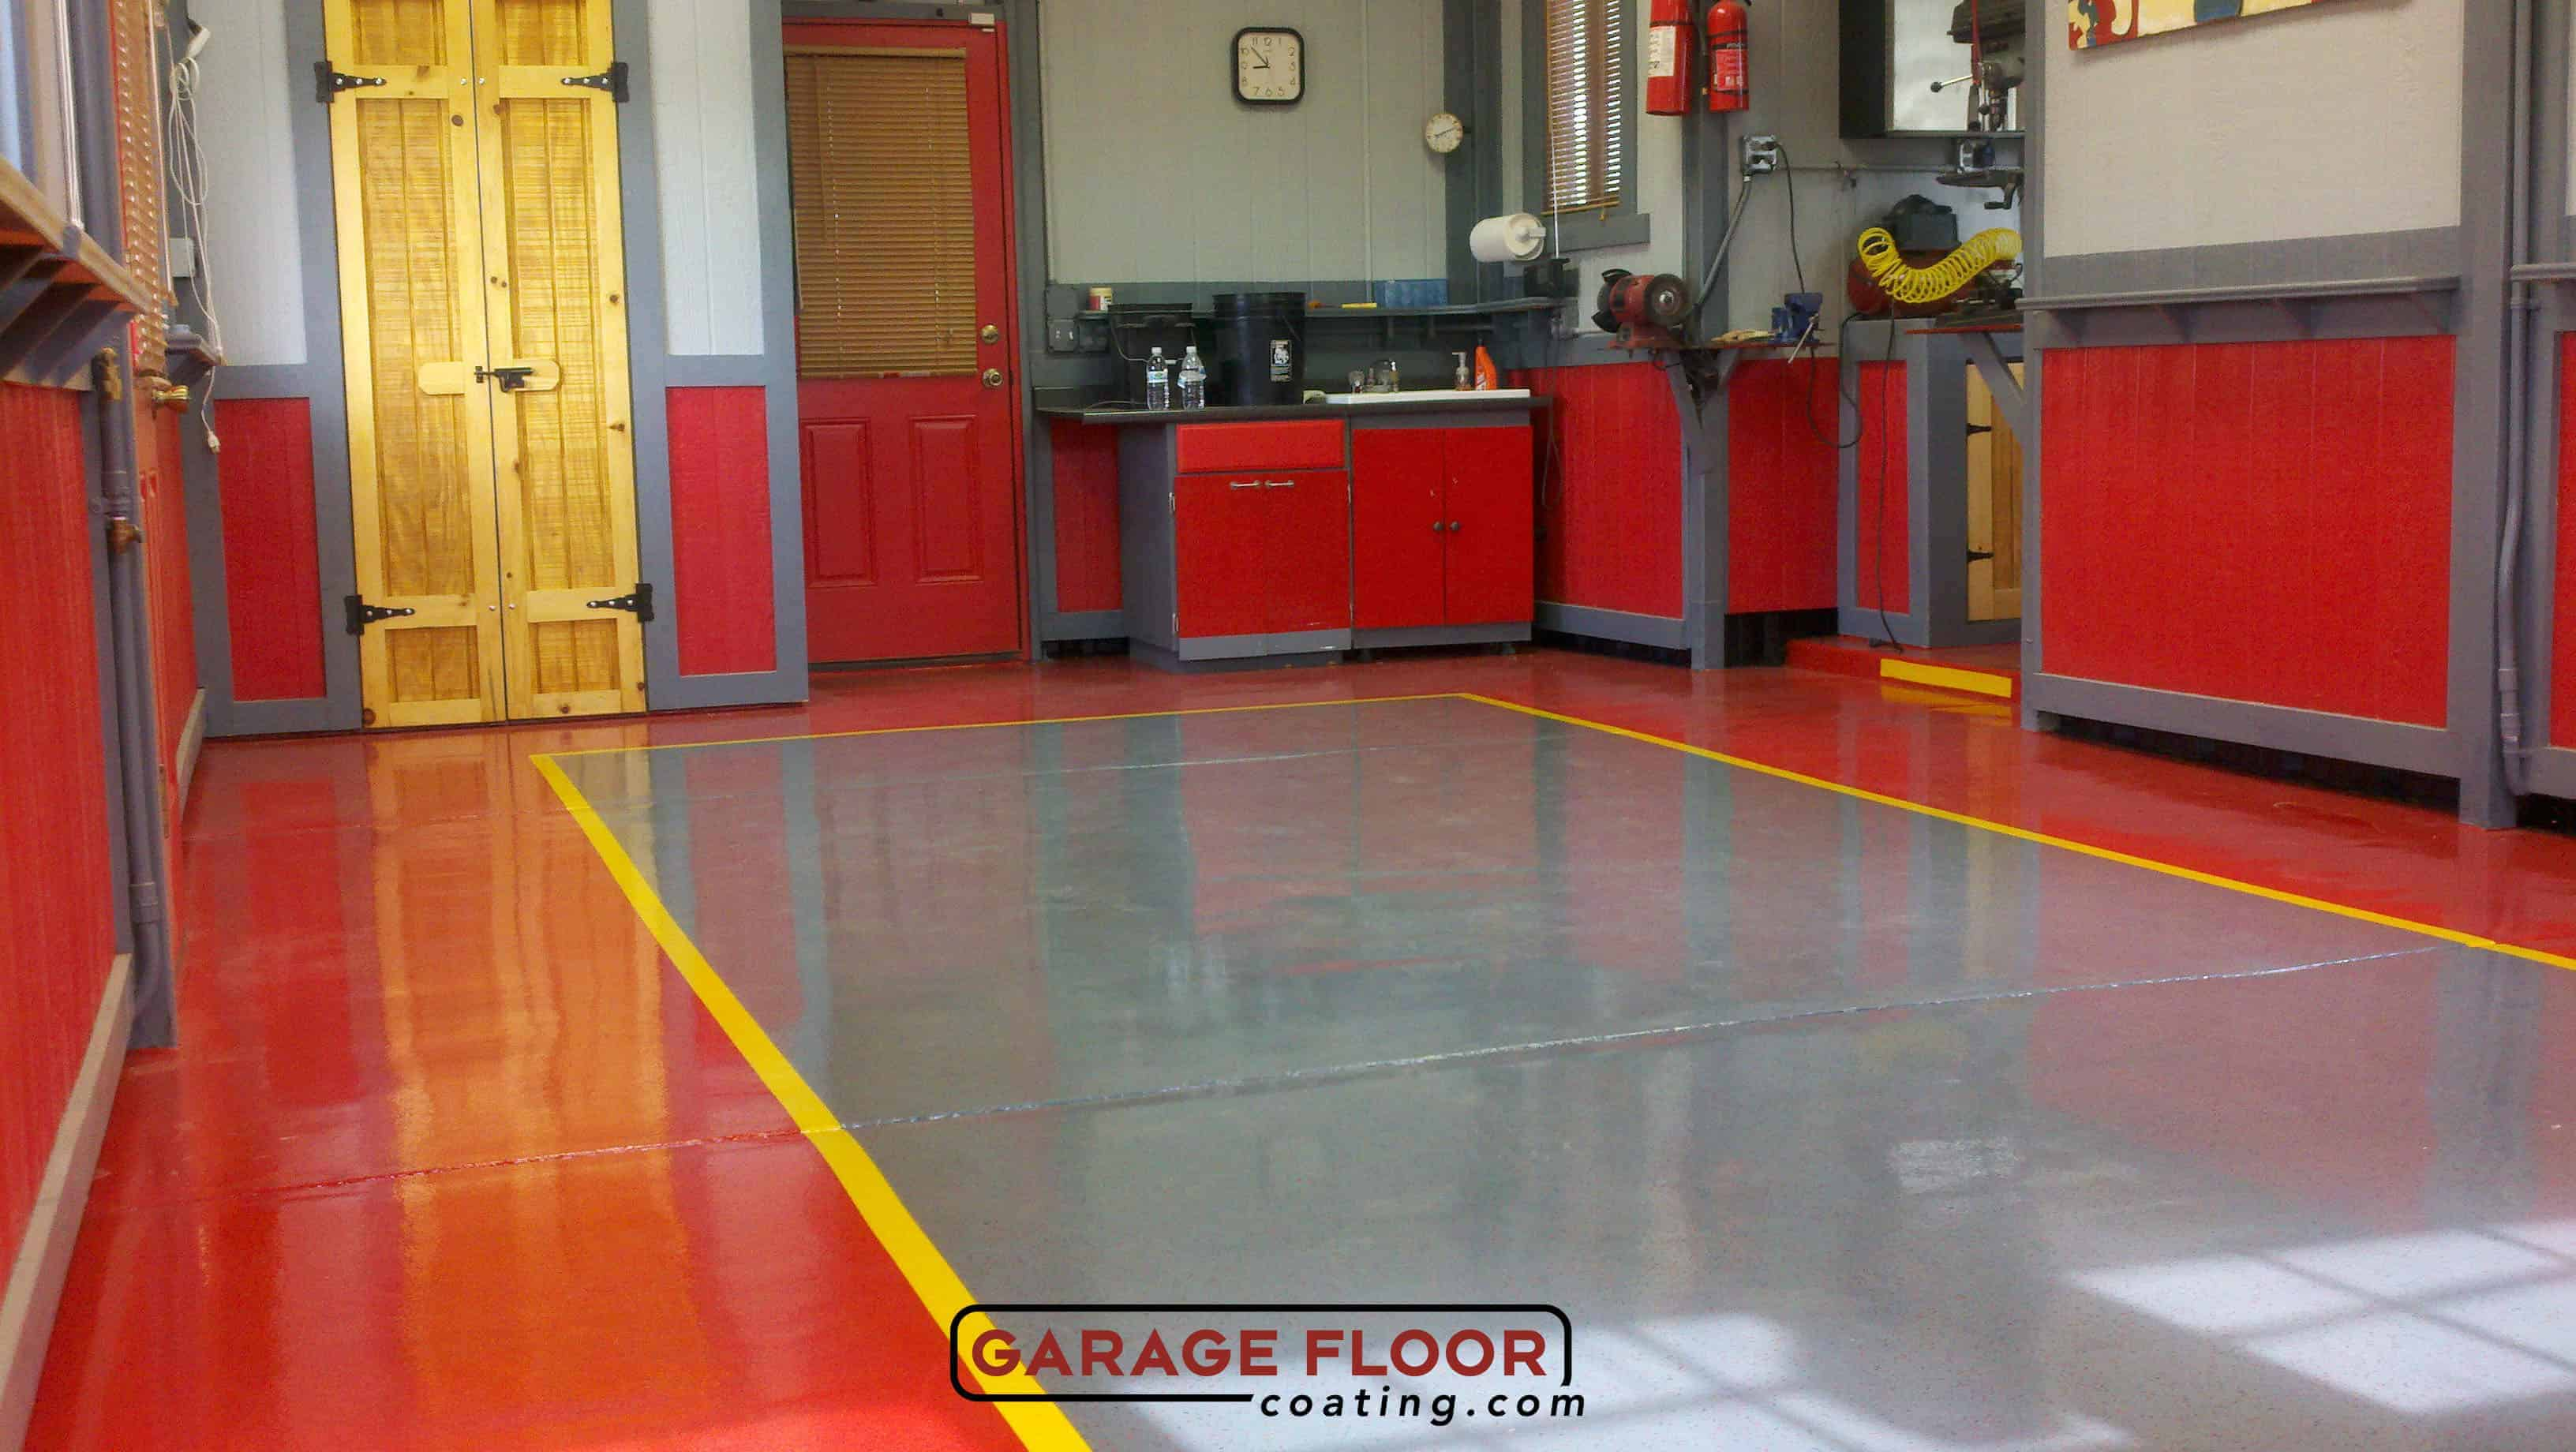 garage floor coating systems carpet vidalondon